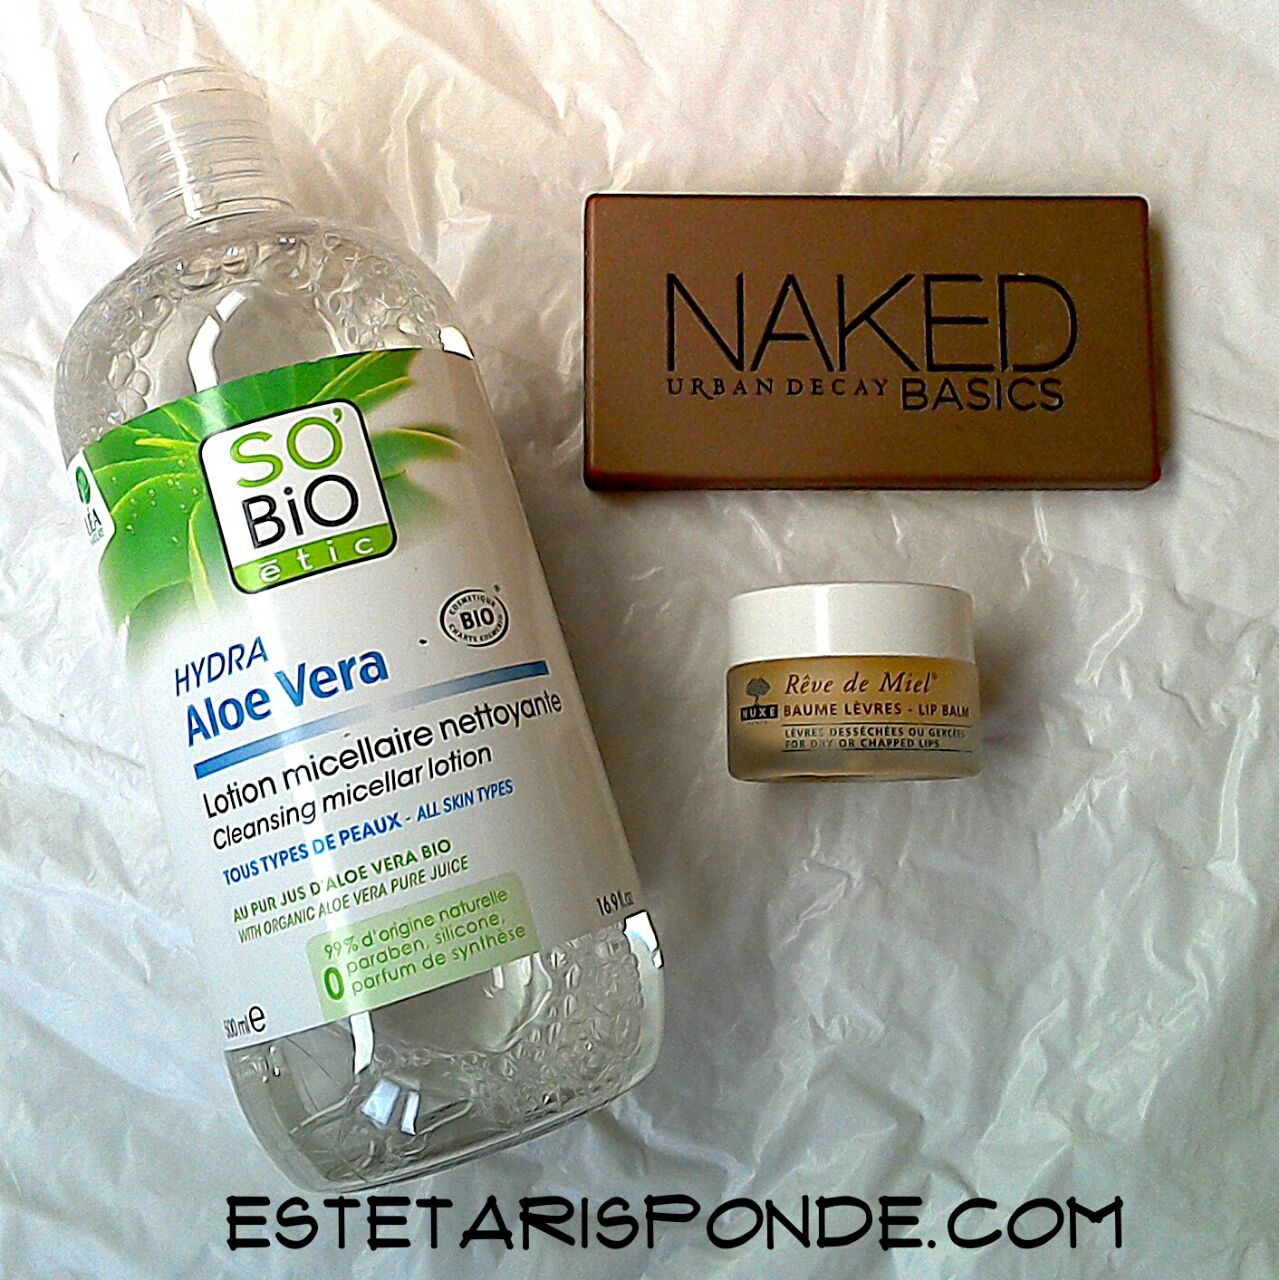 Best Products estetarisponde.com 2014